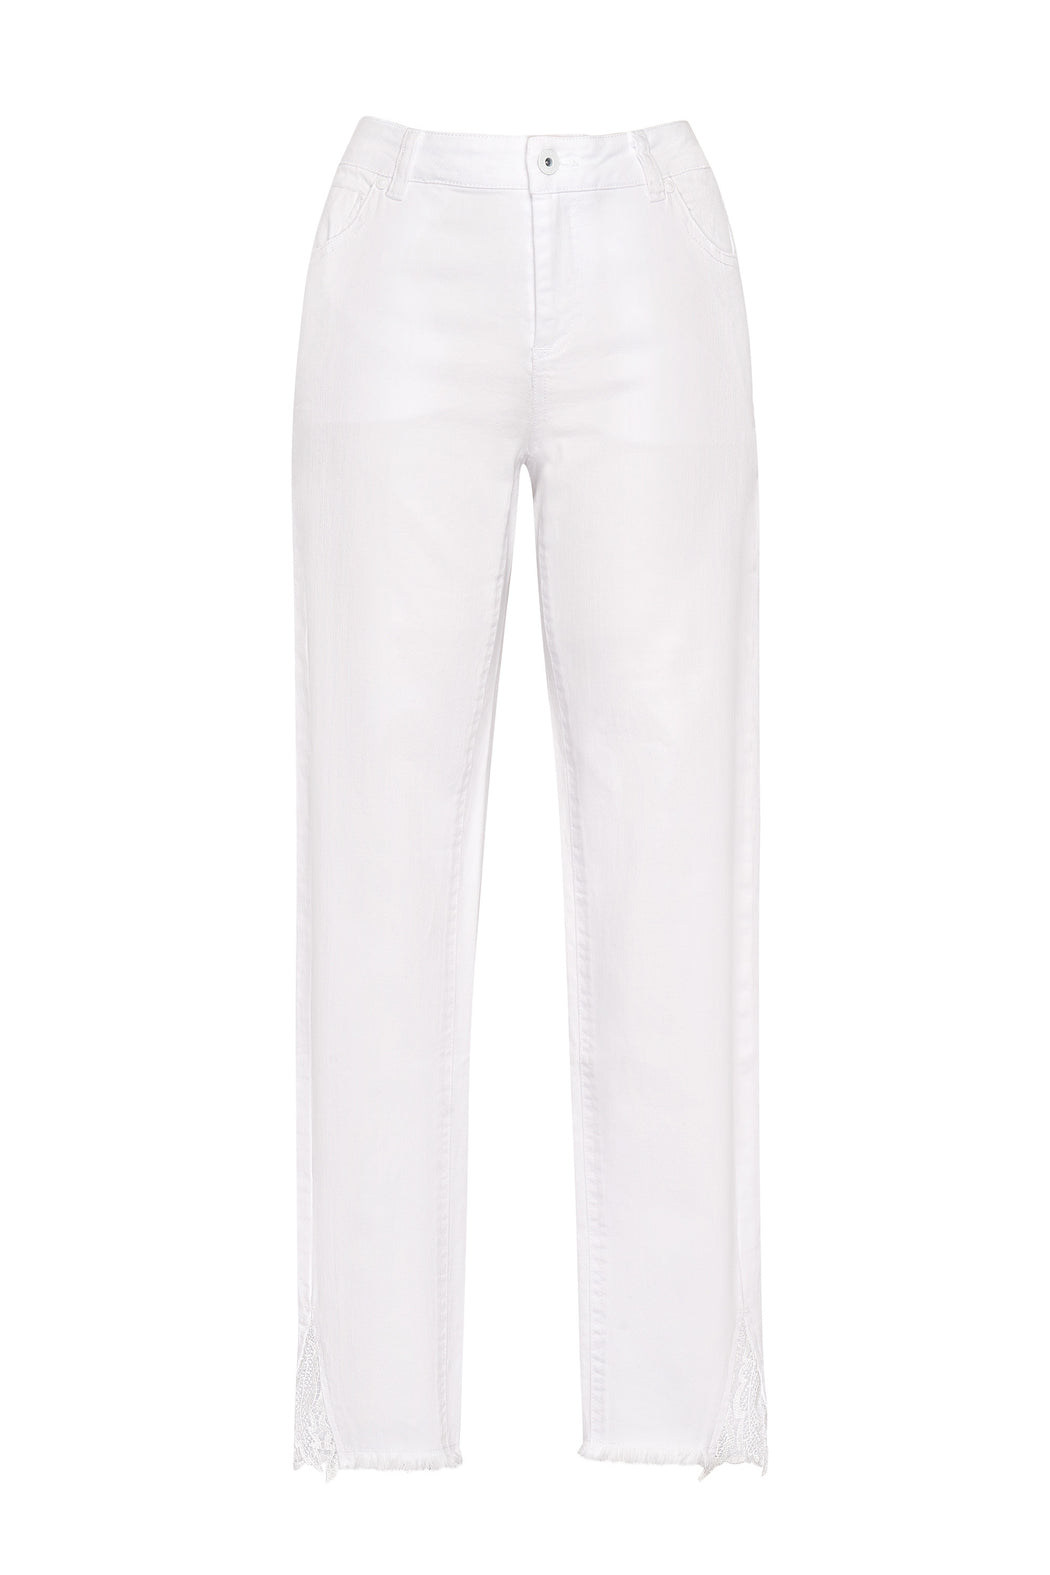 Loobies Story Adella Jean - White Denim | Shop at Wallace and Gibbs NZ